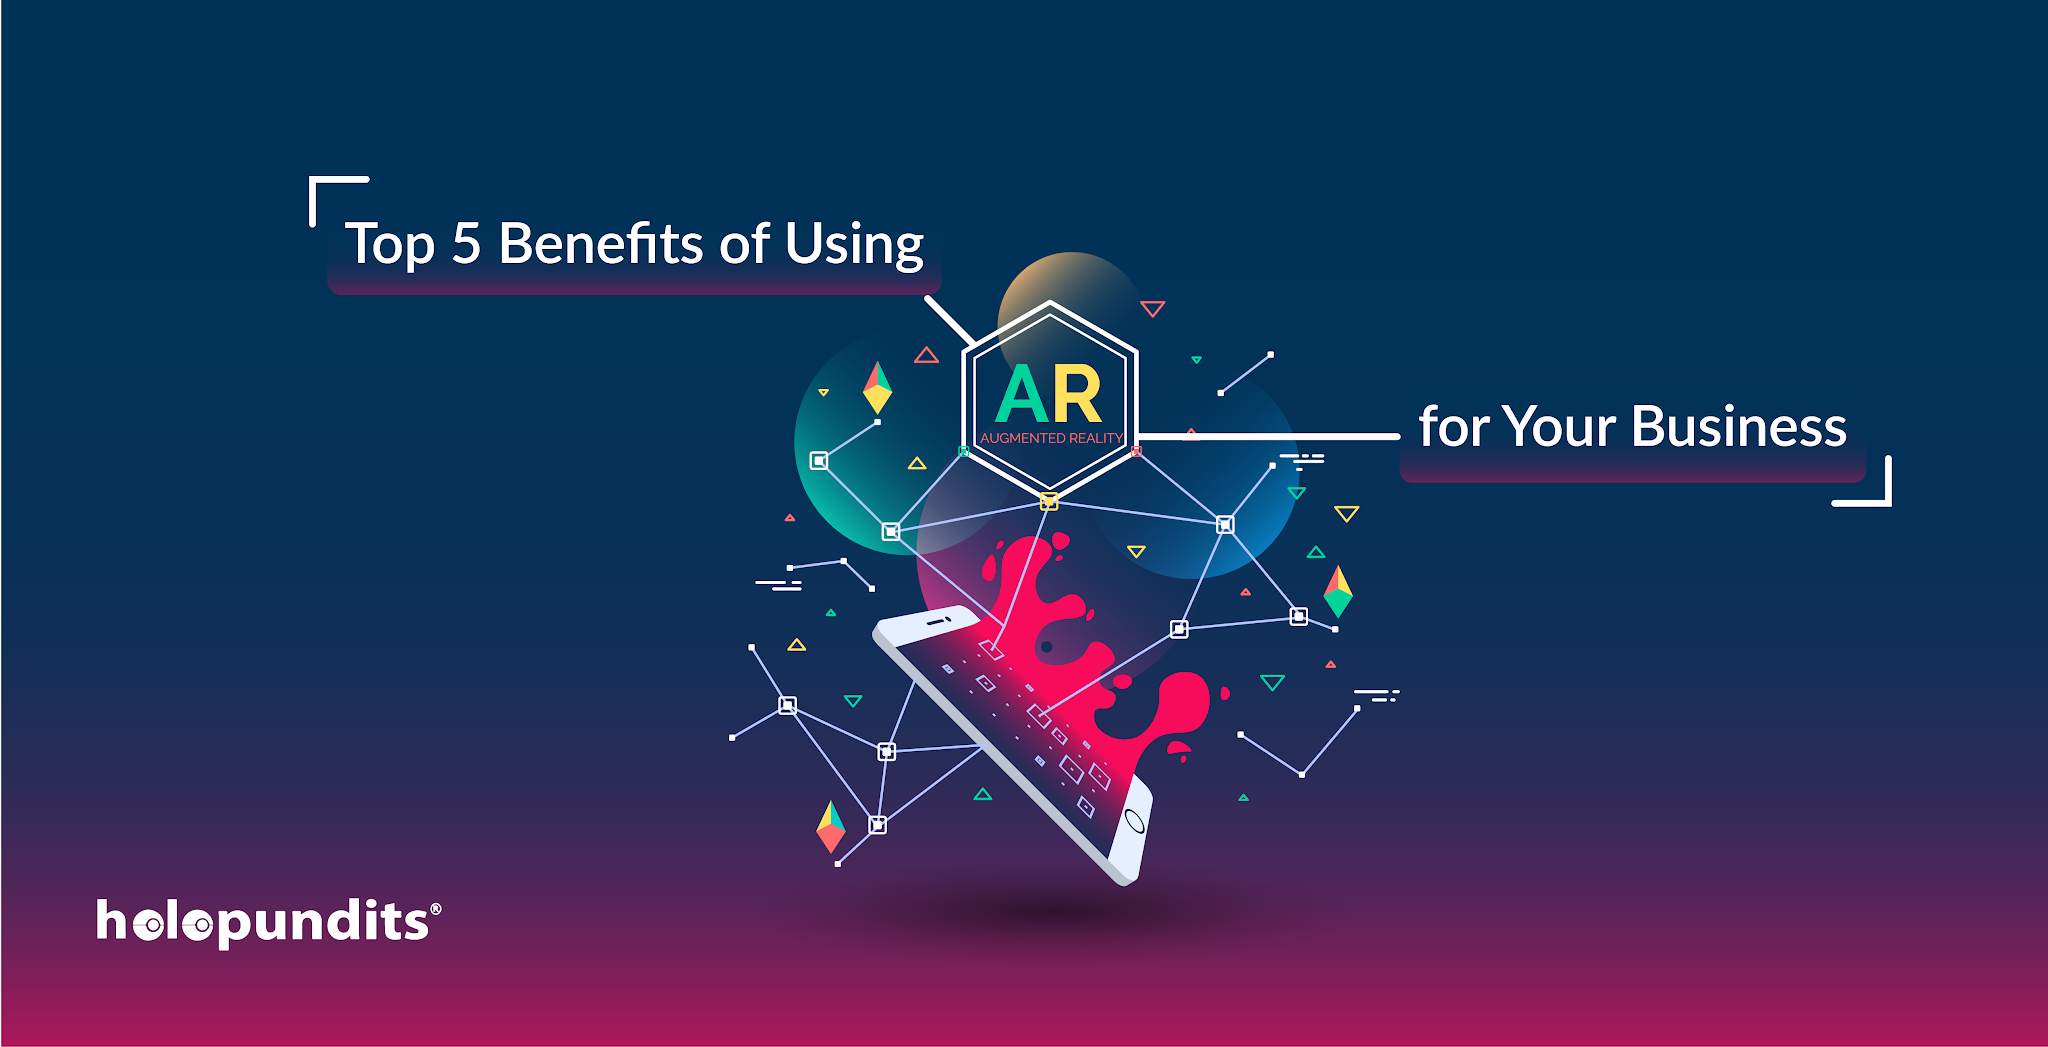 Top 5 Benefits of Using AR for Your Business